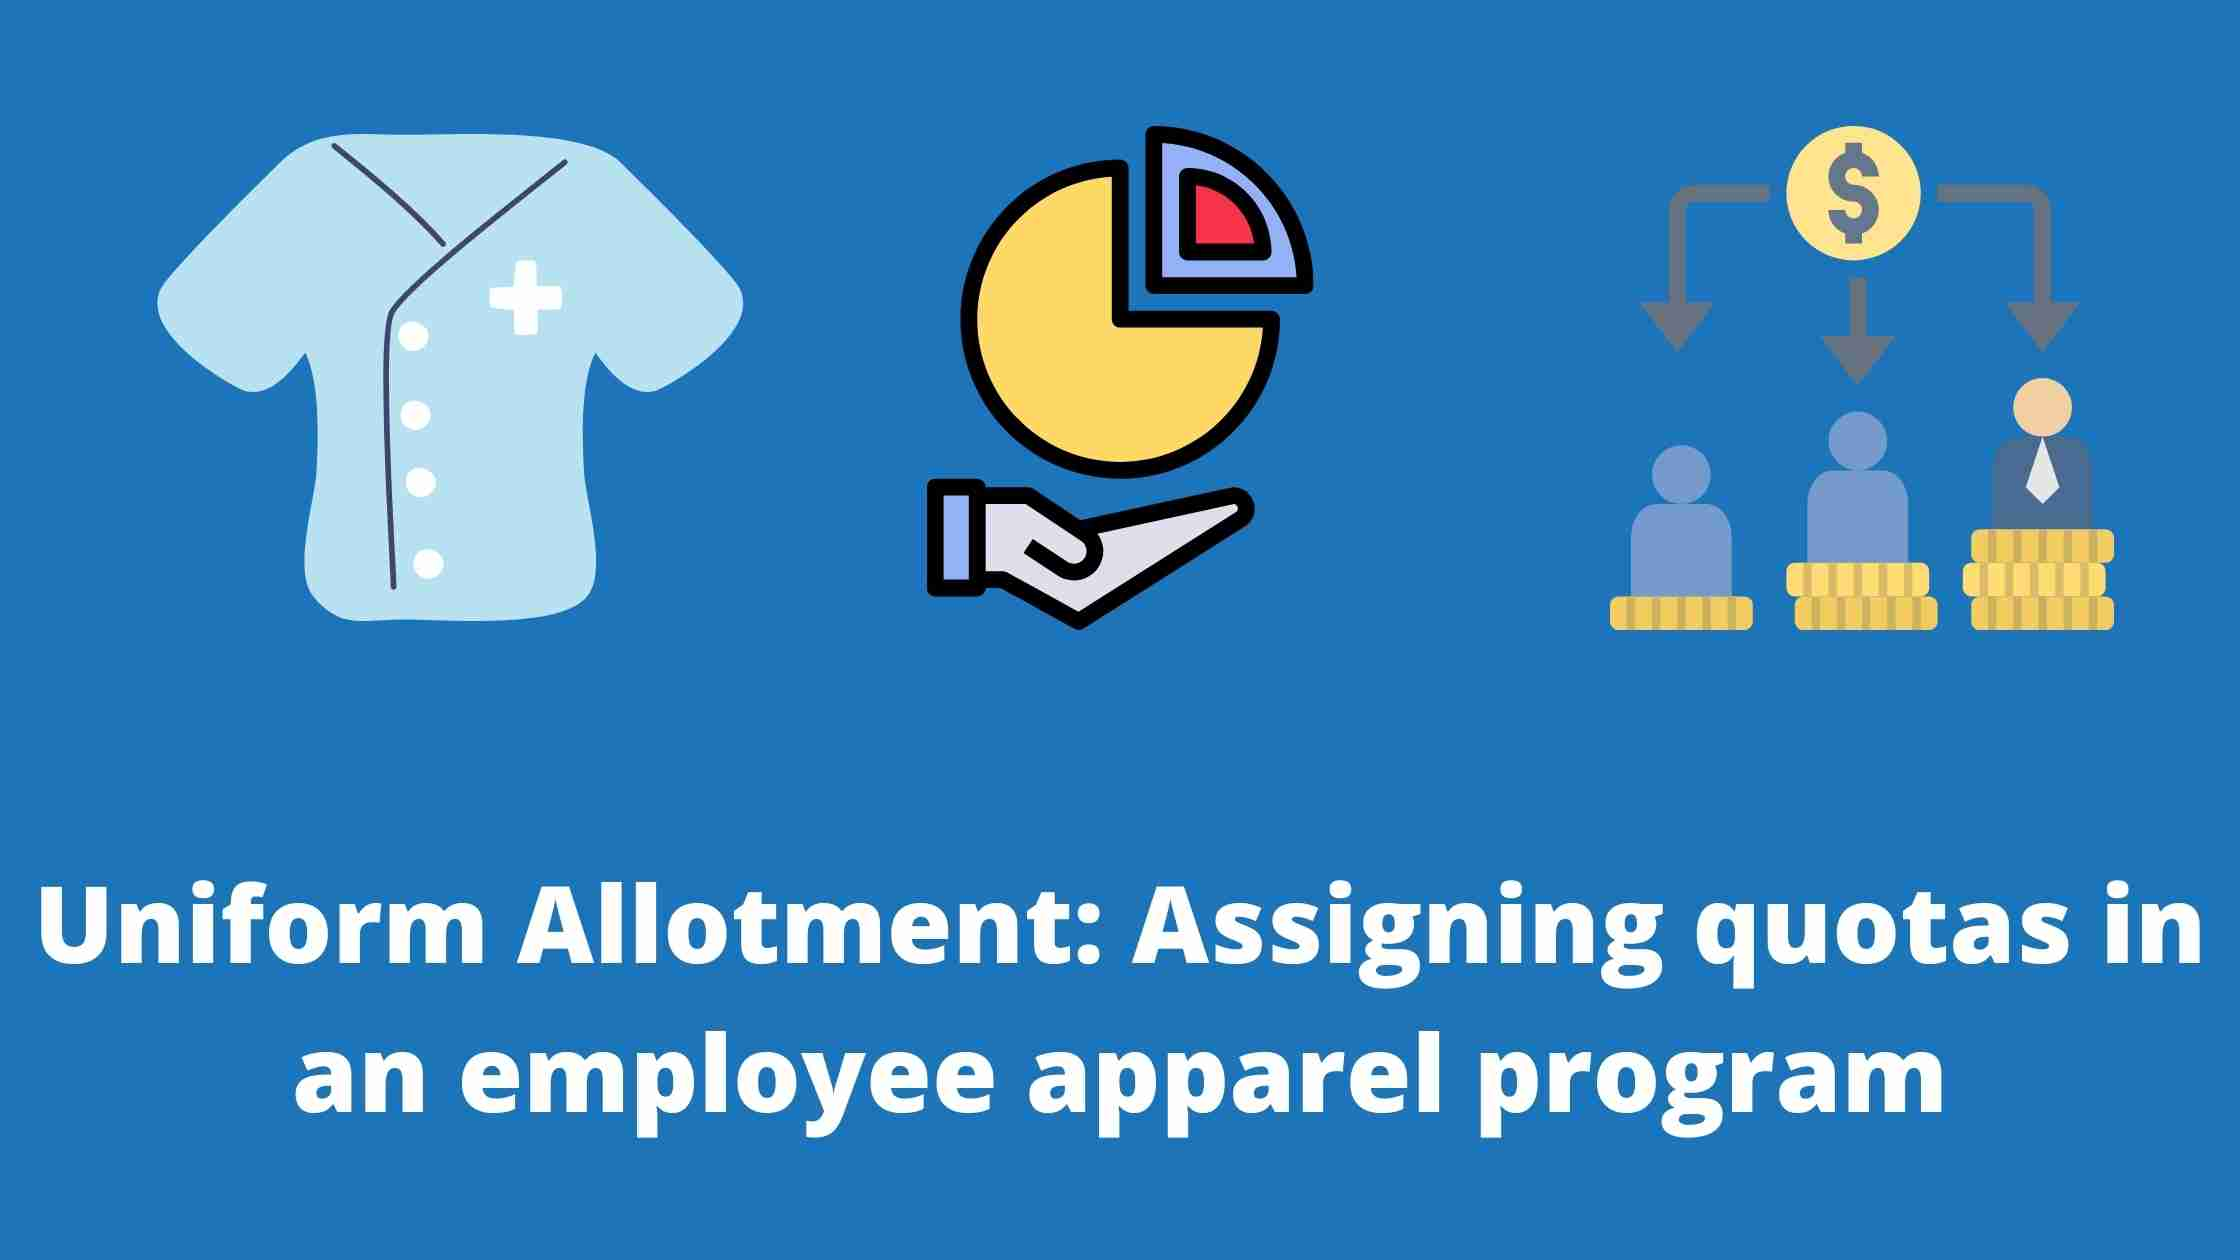 Uniform Allotment: Assigning quotas in an employee apparel program